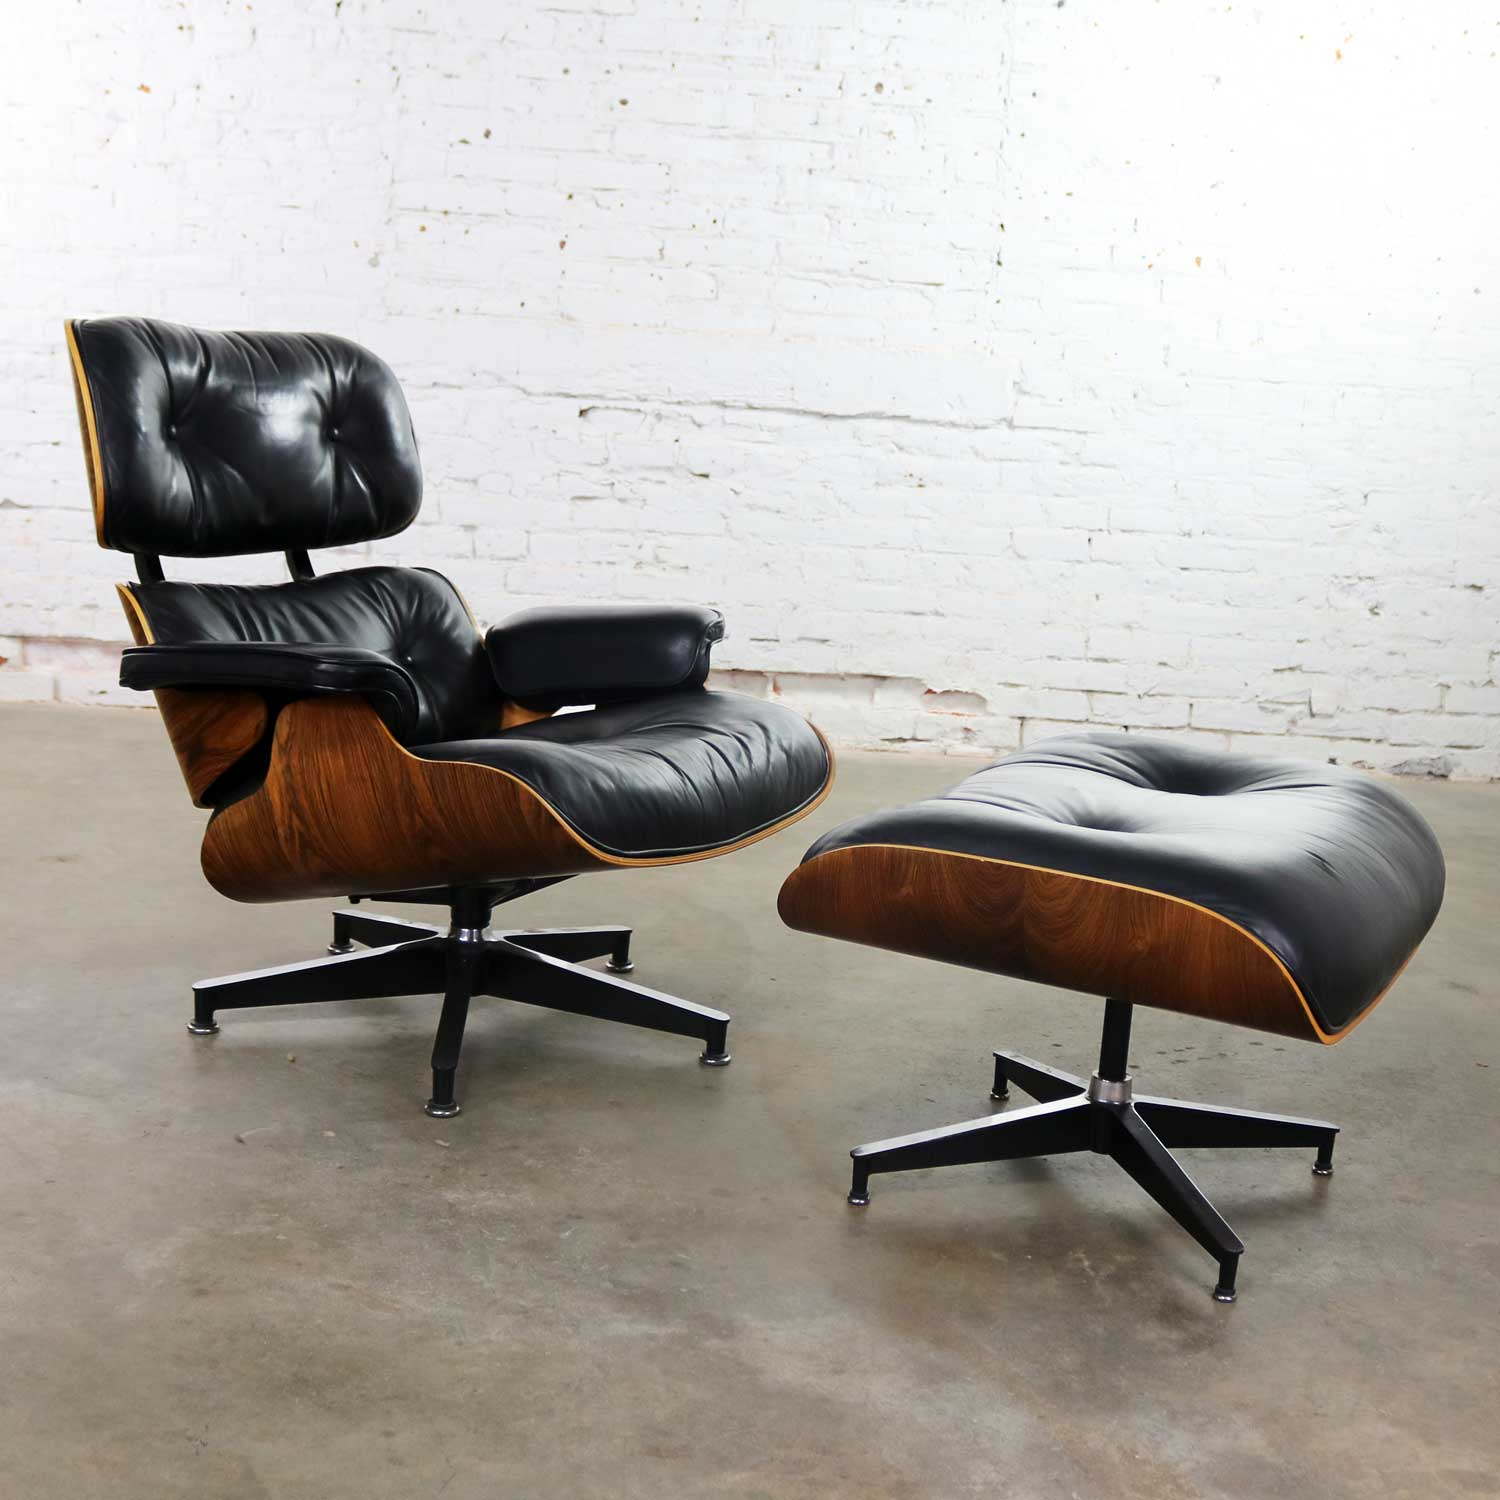 Image of: Vintage Eames Lounge Chair Ottoman In Black Leather Rosewood For Herman Miller Warehouse 414